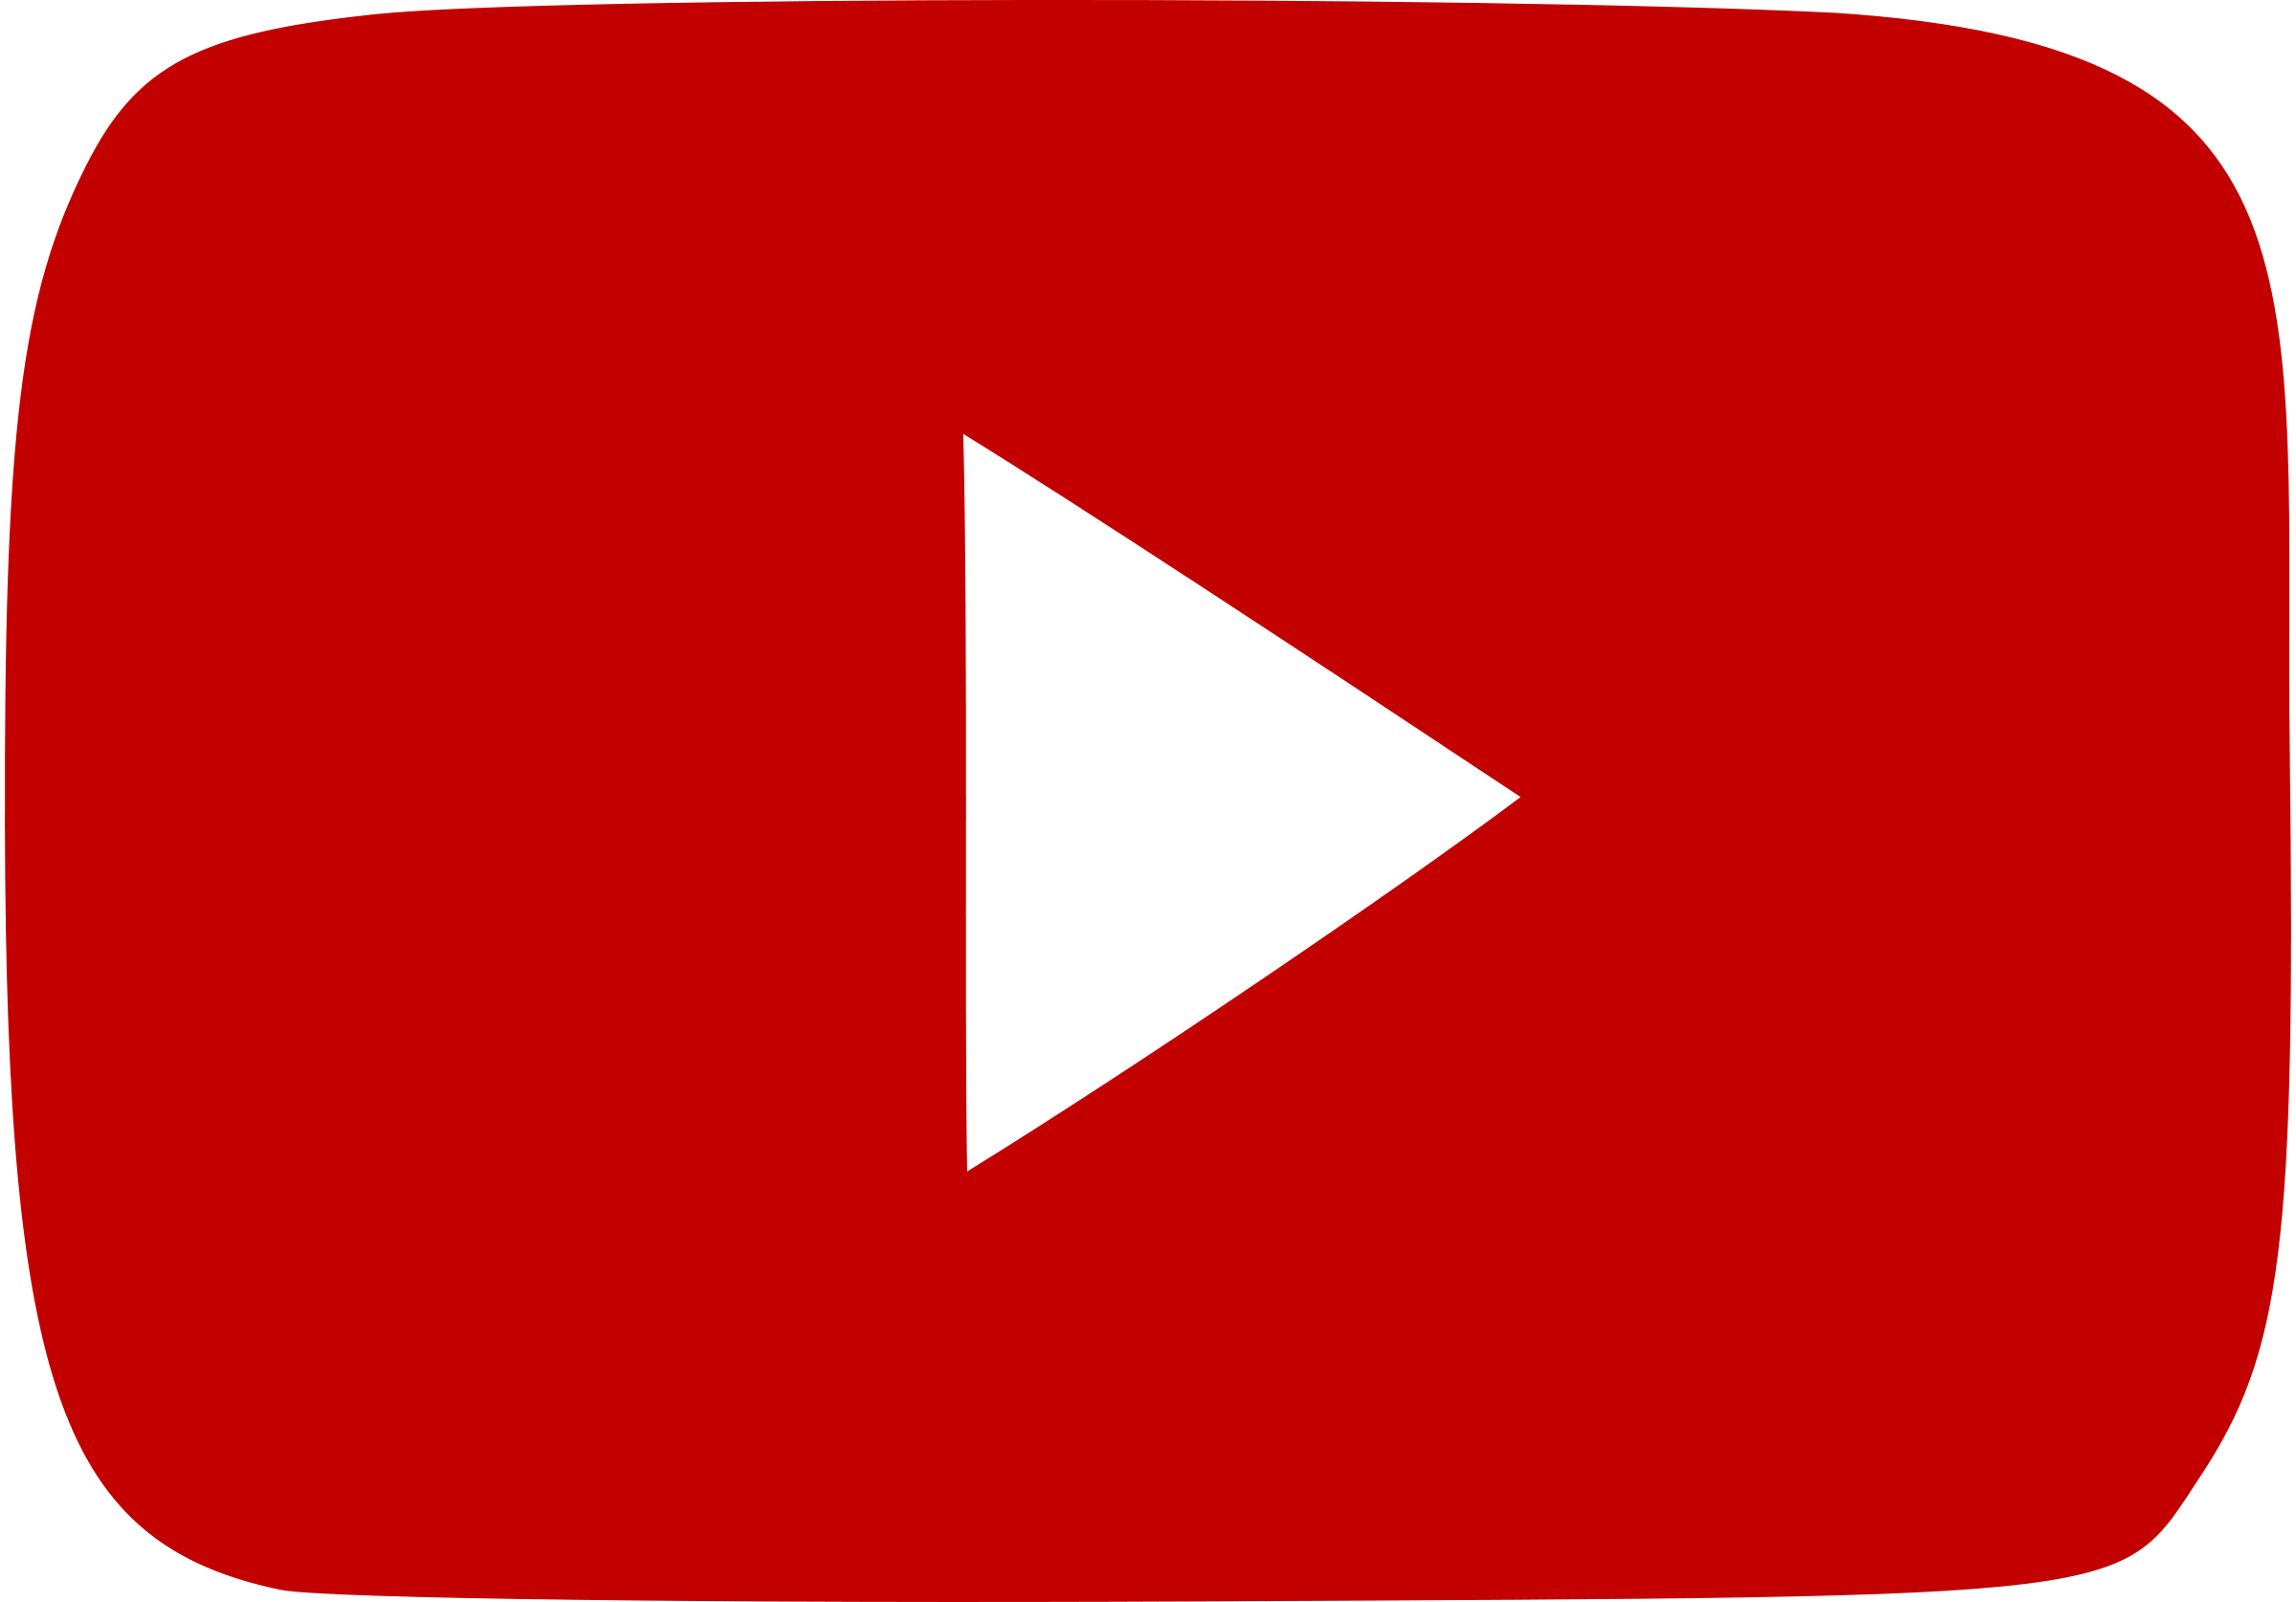 Free Youtube Play Button, Download Free Clip Art, Free Clip ... clip transparent download